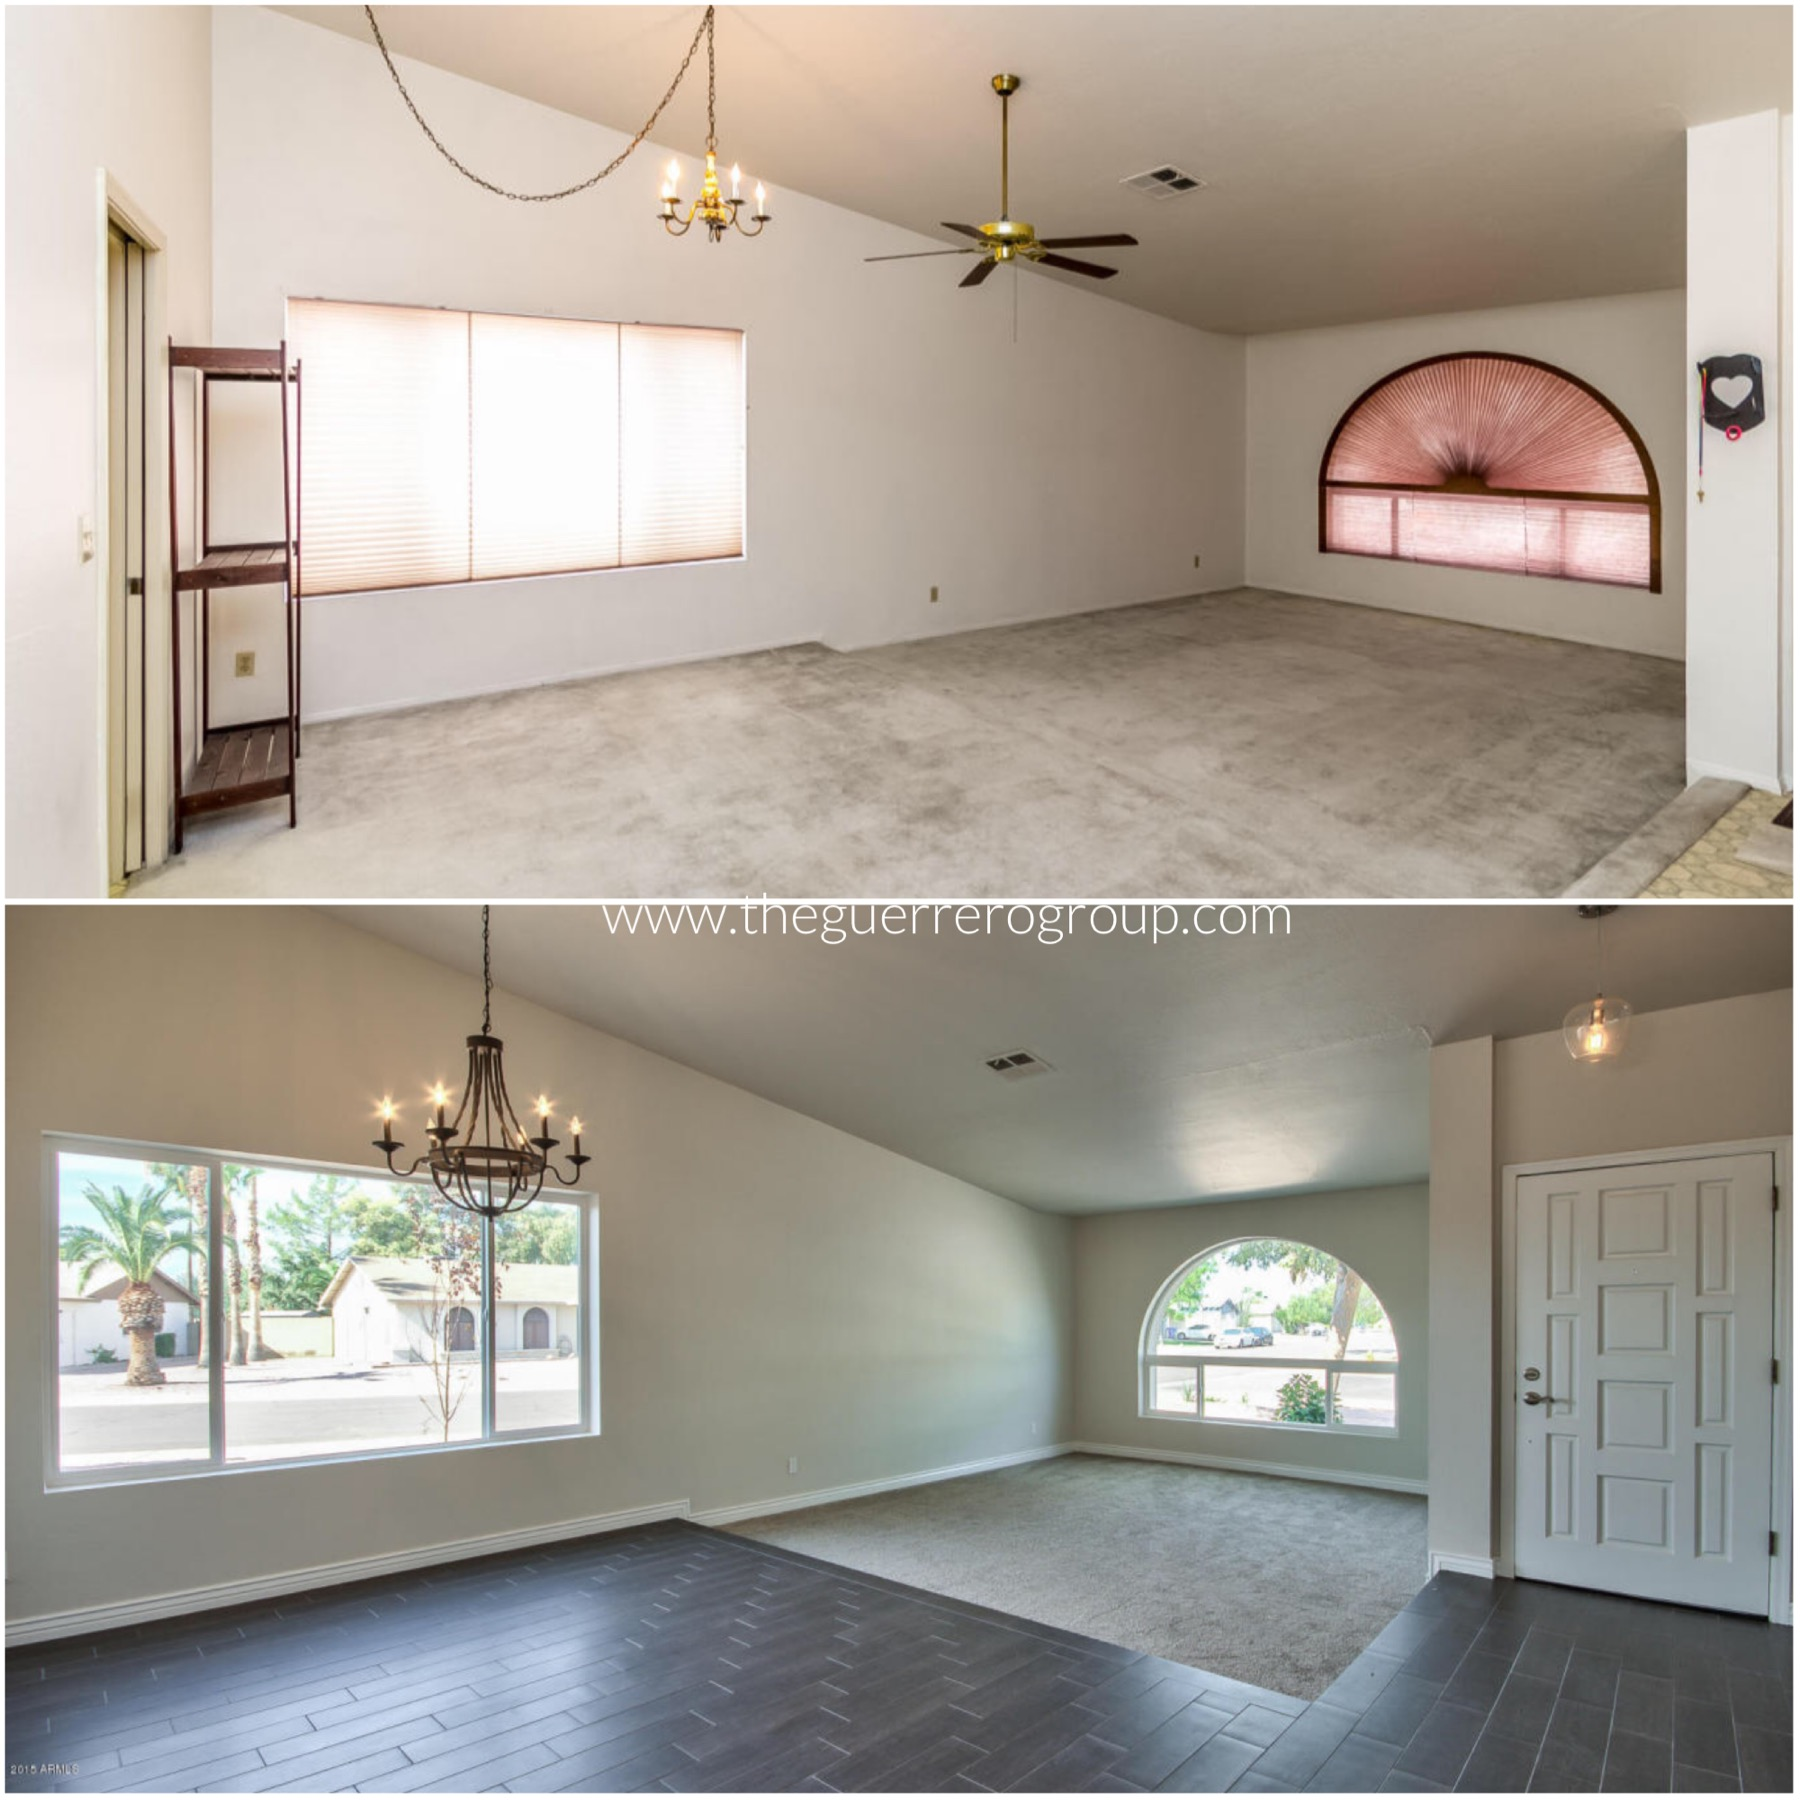 The Guerrero Group offering Newly Renovated Chandler Homes for Sale near 101 Freeway & Price Corridor